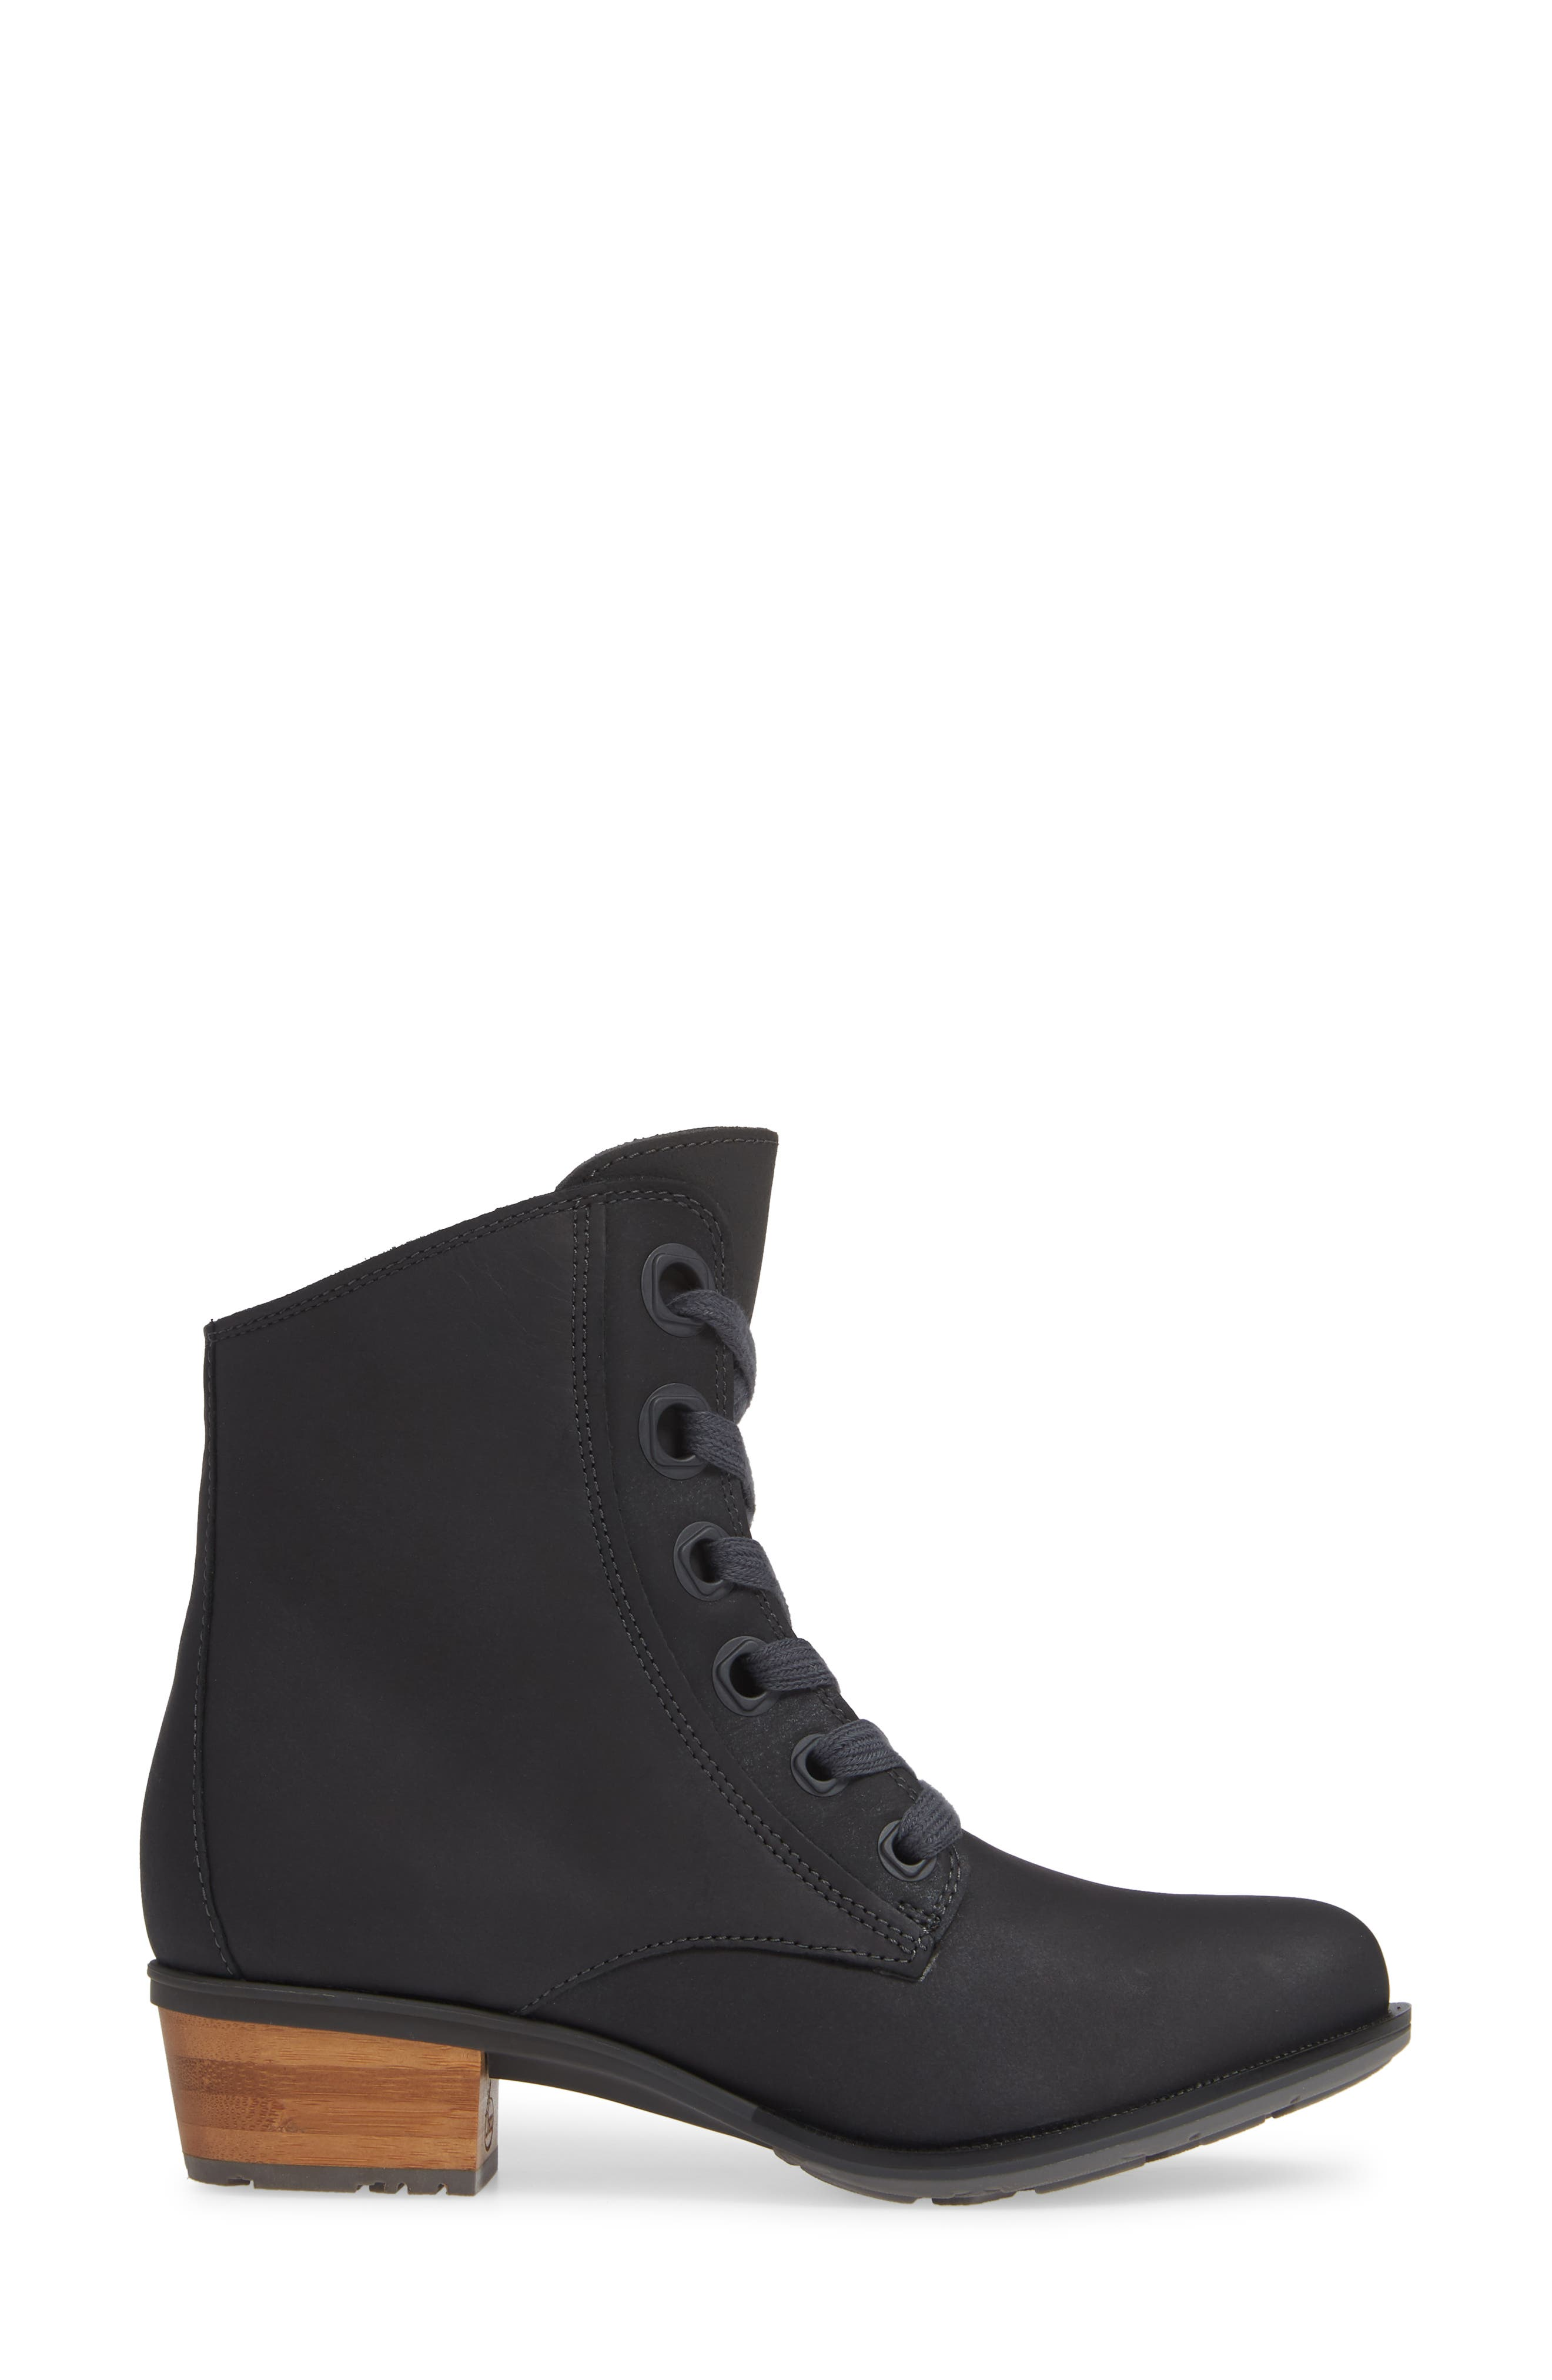 CHACO, Cataluna Waterproof Lace-Up Boot, Alternate thumbnail 3, color, BLACK LEATHER